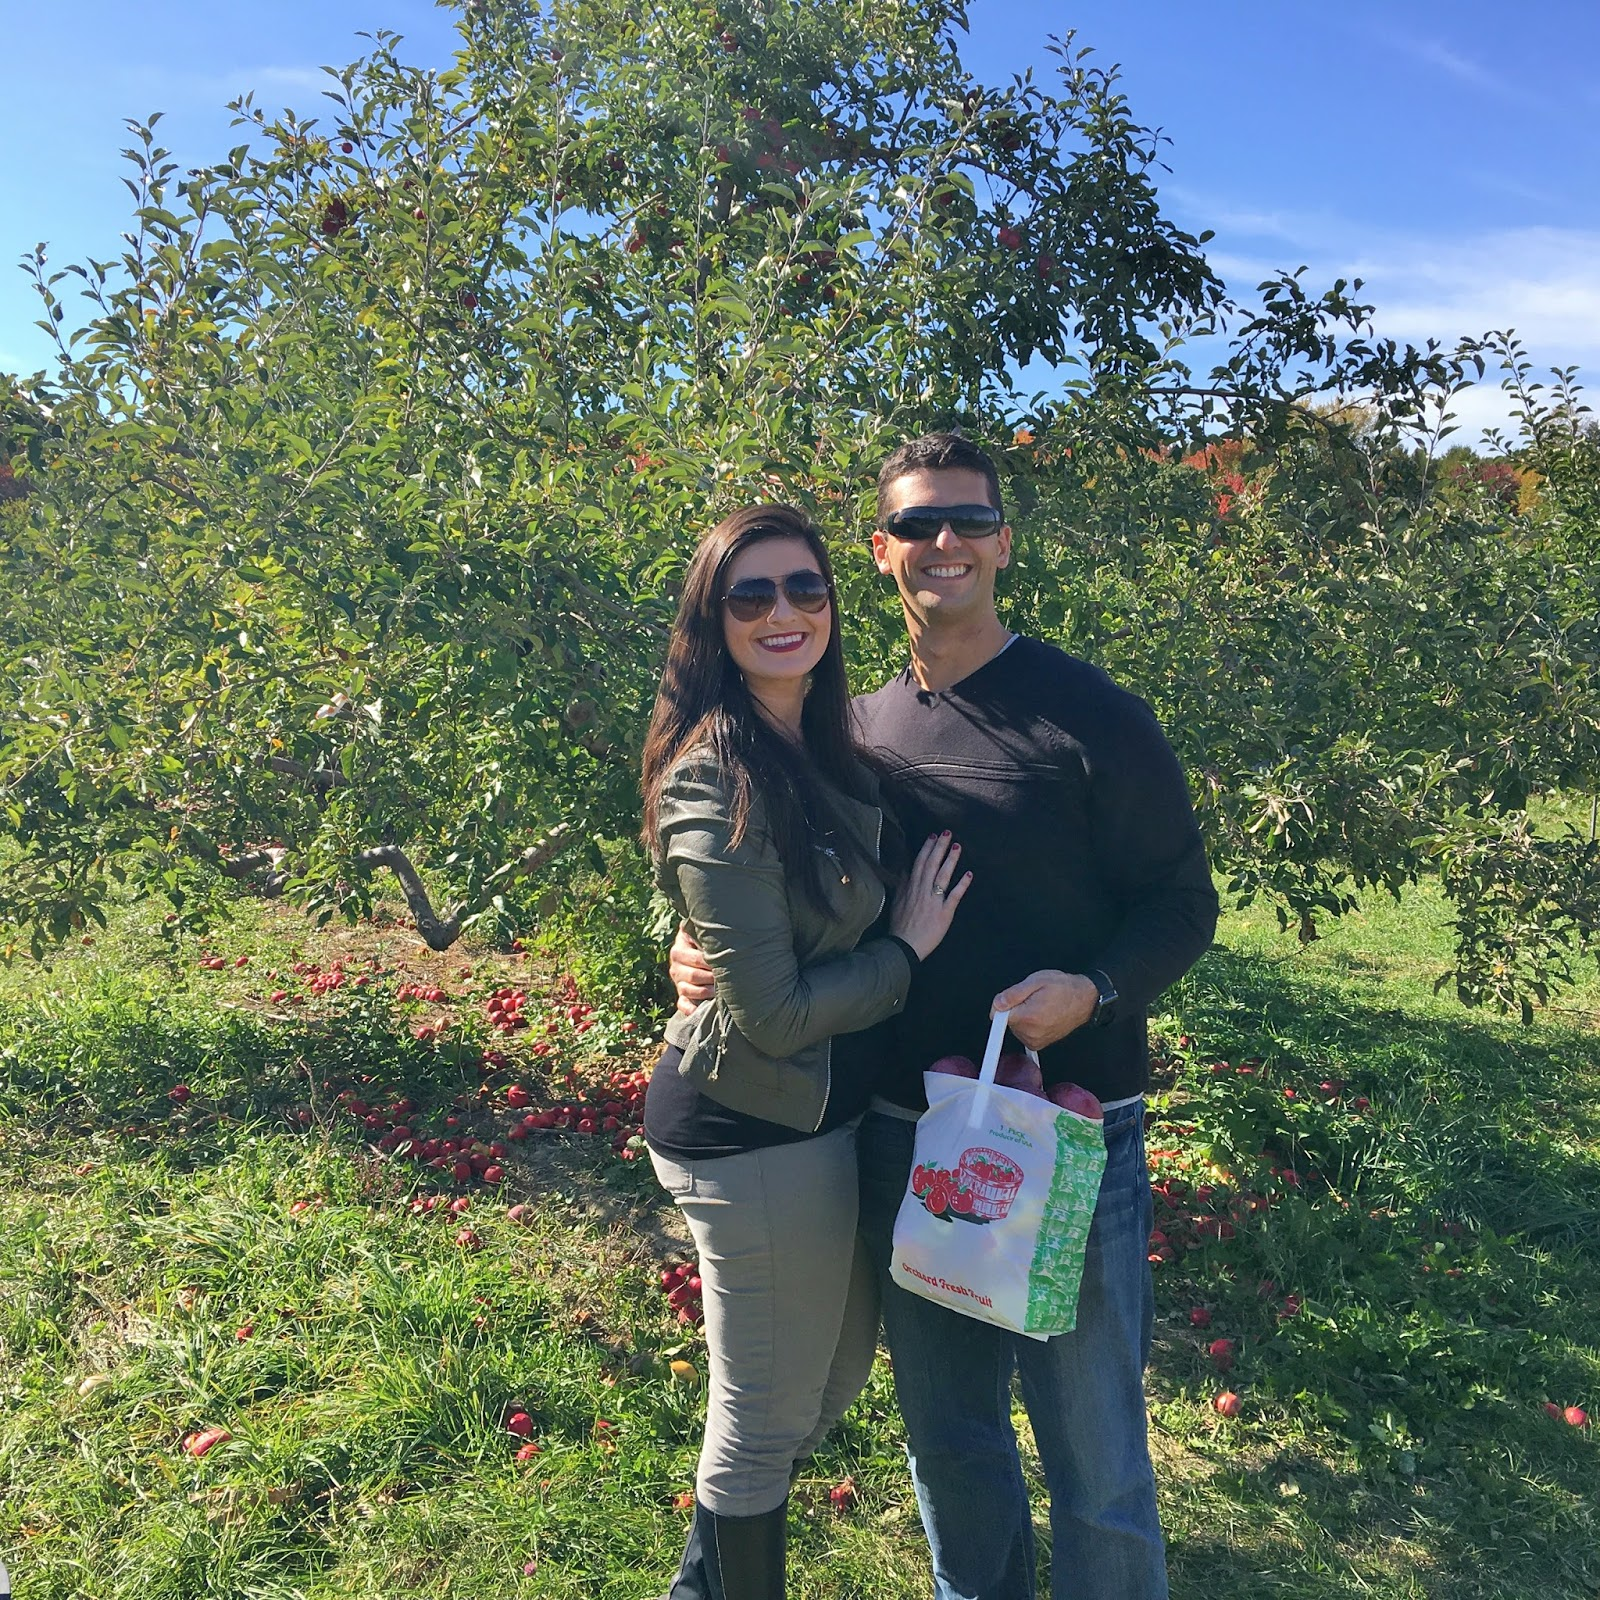 Nashoba Valley Apple Picking